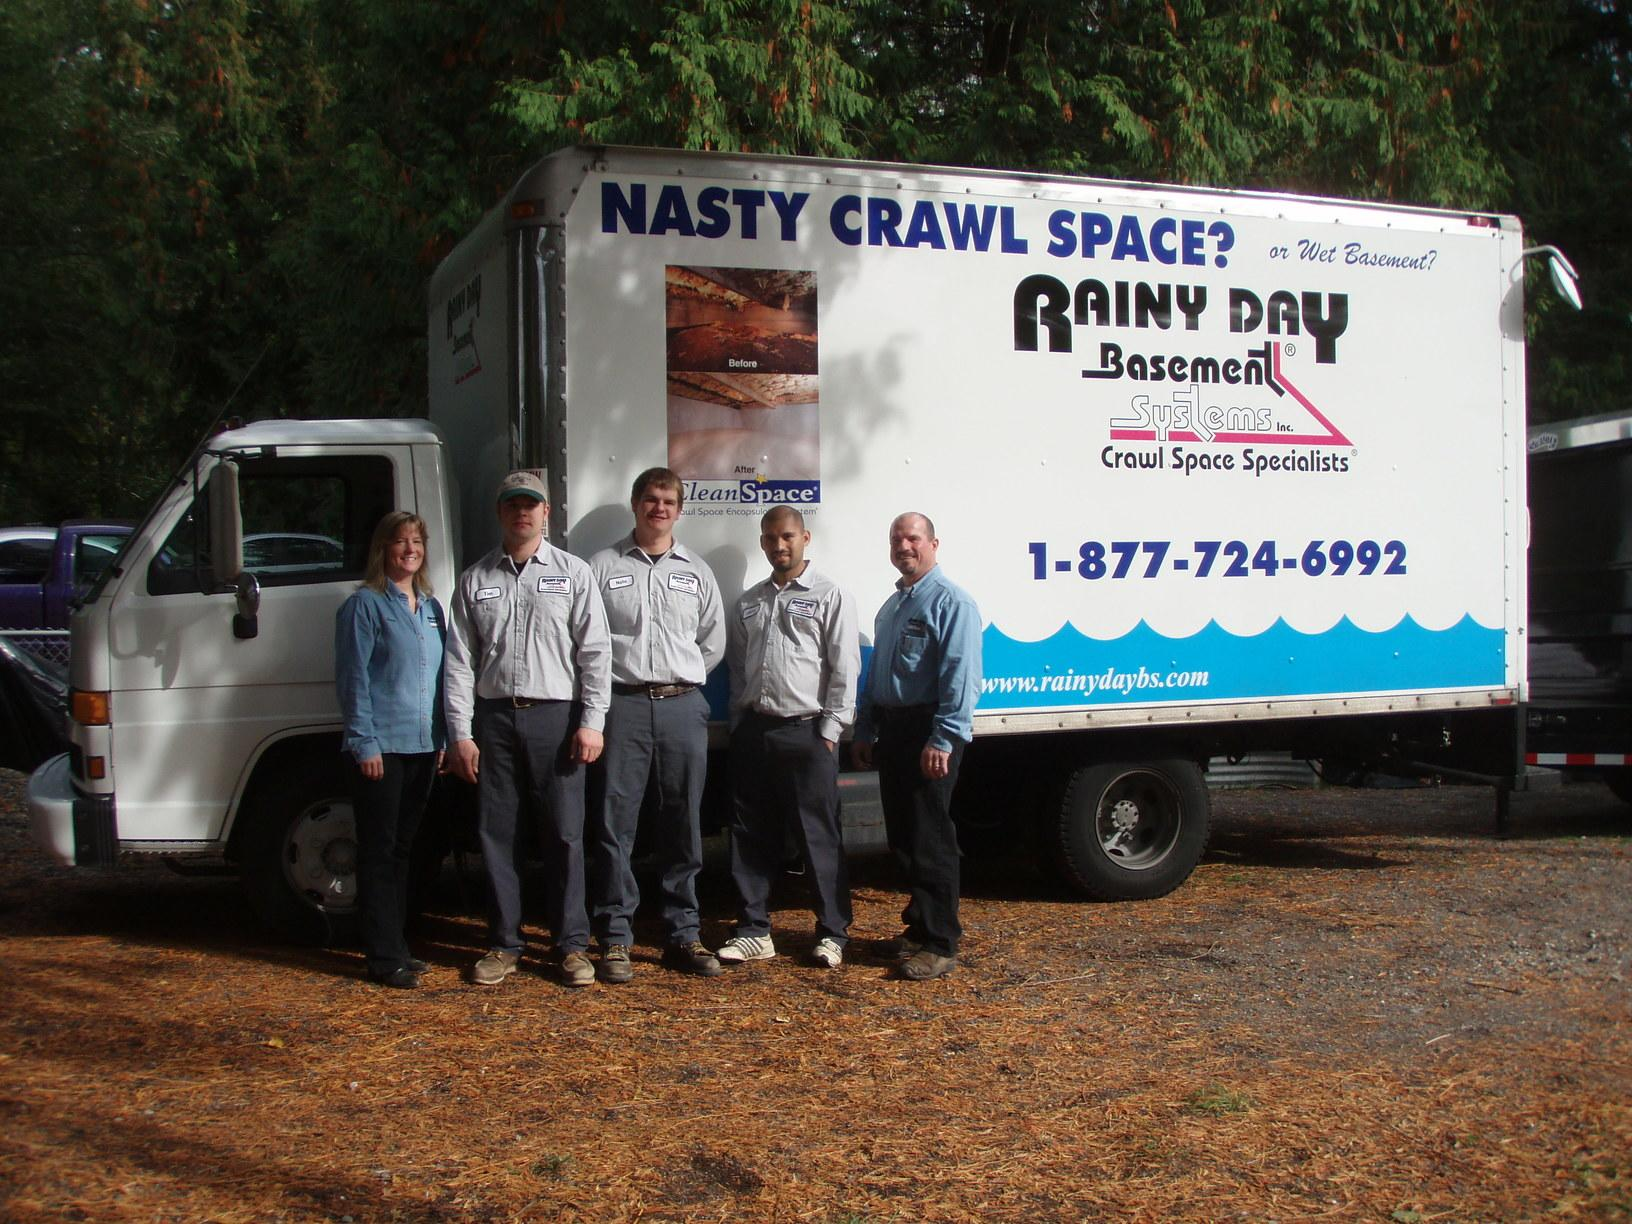 If you have a basement, crawl space, or foundation concern you know who to call!